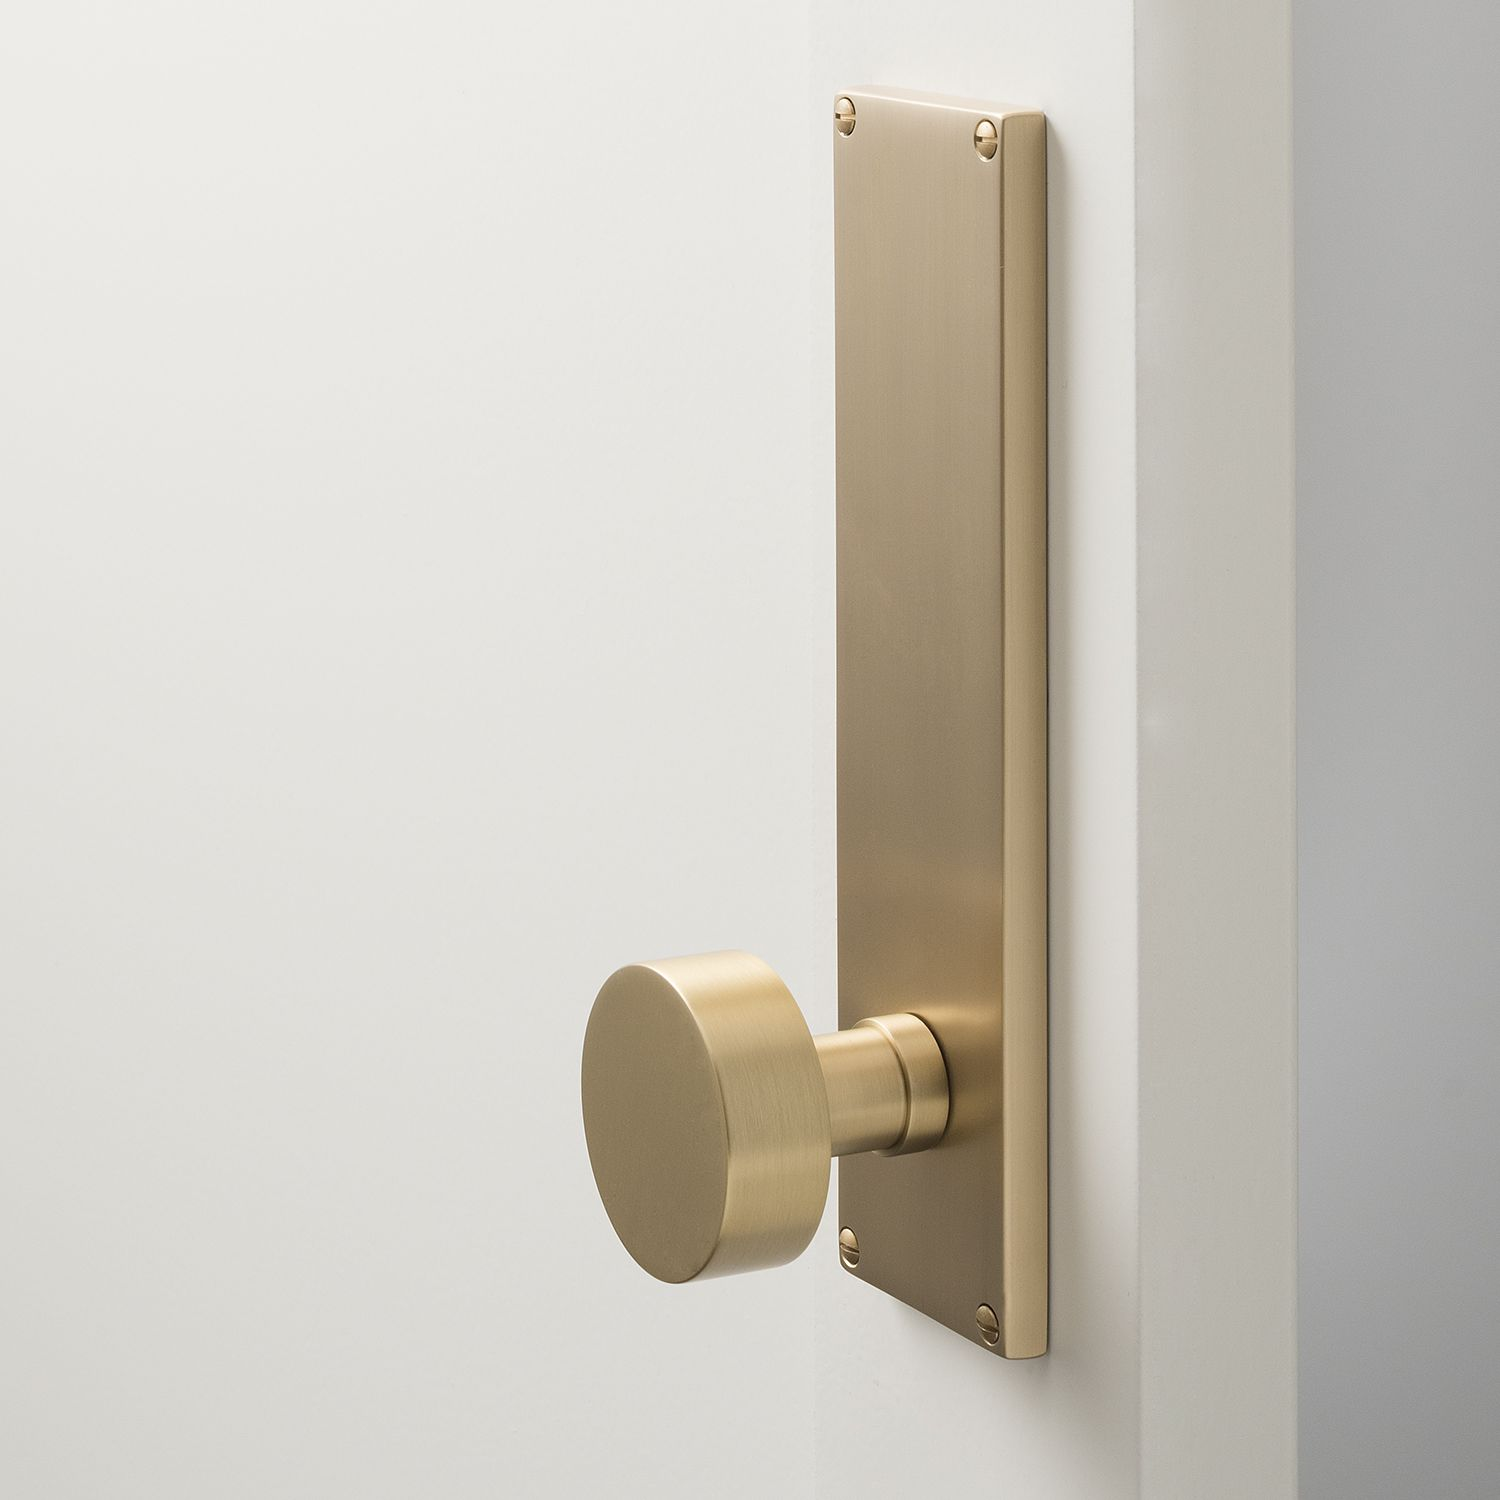 Tate door set with cylinder knob satin brass hardware doors and